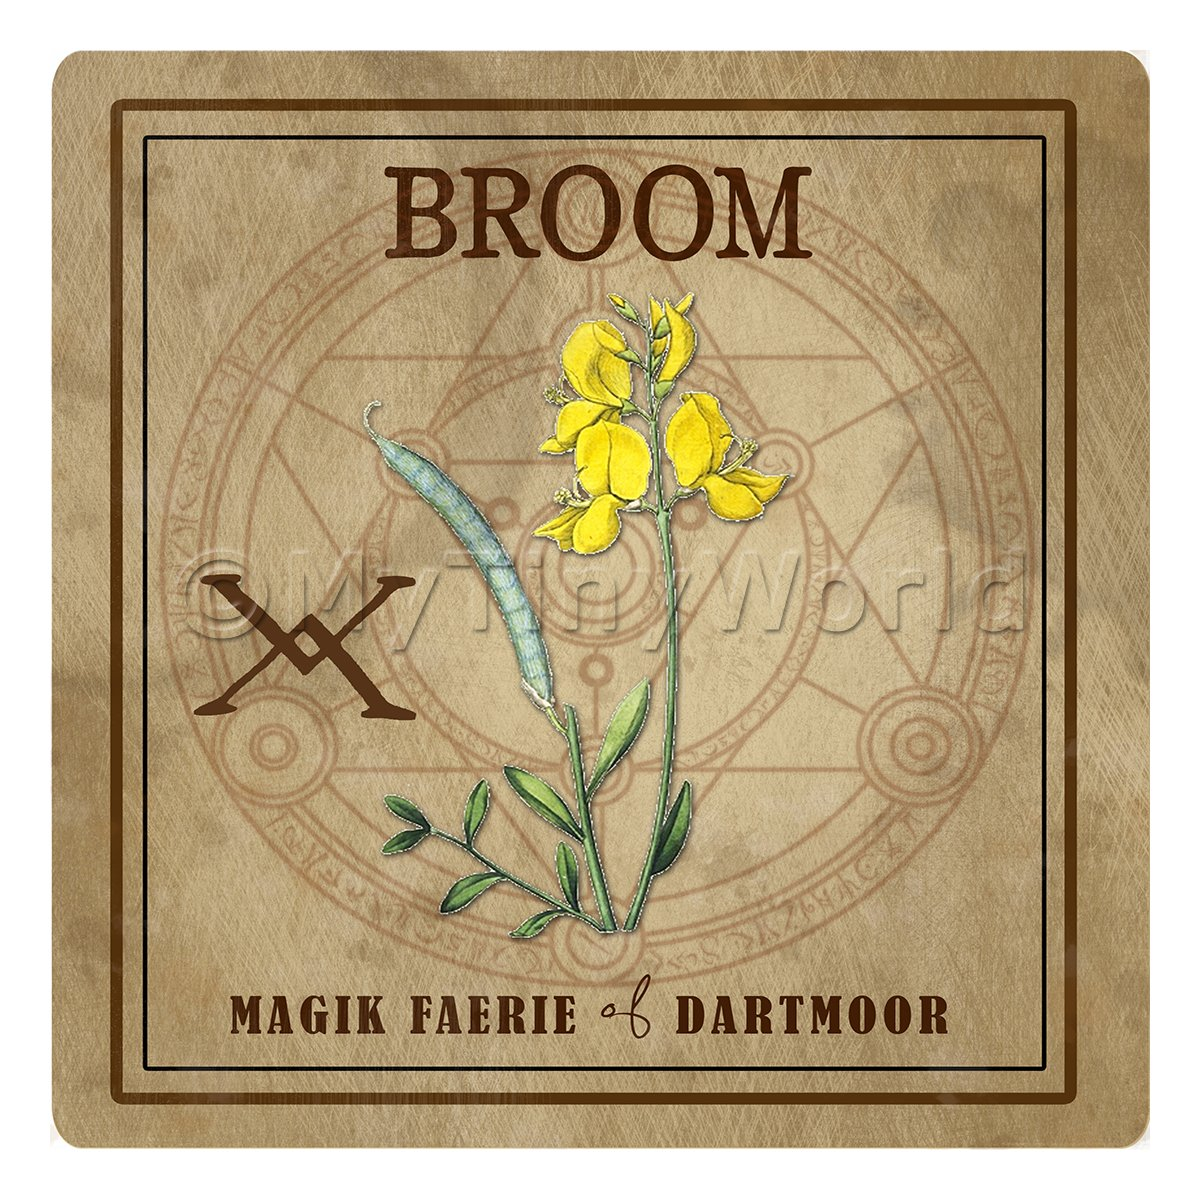 Dolls House Herbalist/Apothecary Square Broom Herb Label